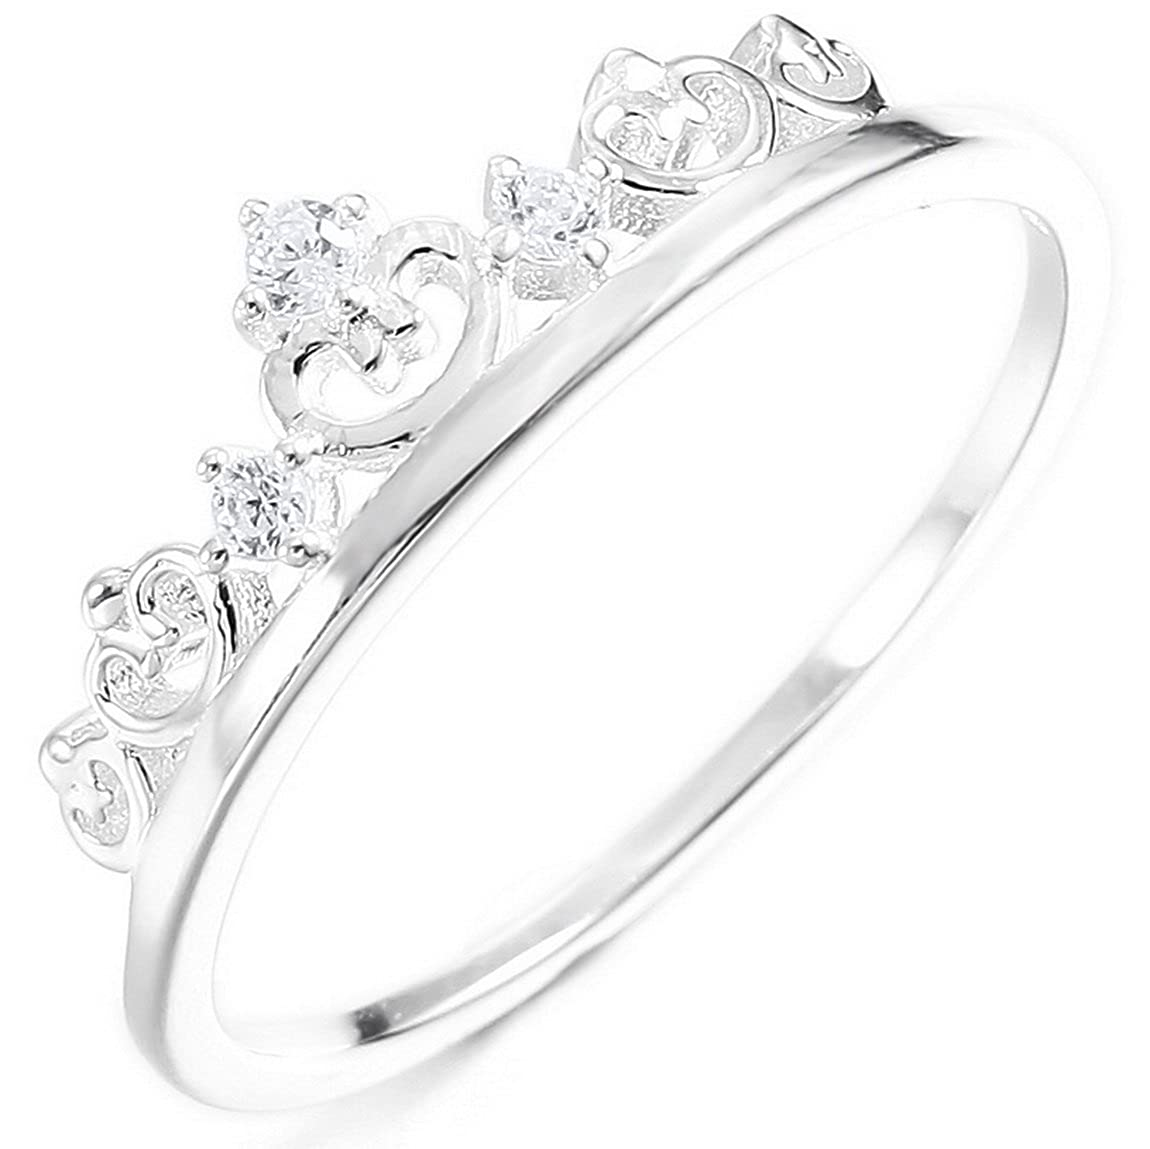 INBLUE Women's Sterling Silver Band Ring CZ Silver Tone Crown Valentine Love Couple Wedding Promise INBLUE Jewelry mne973-parent